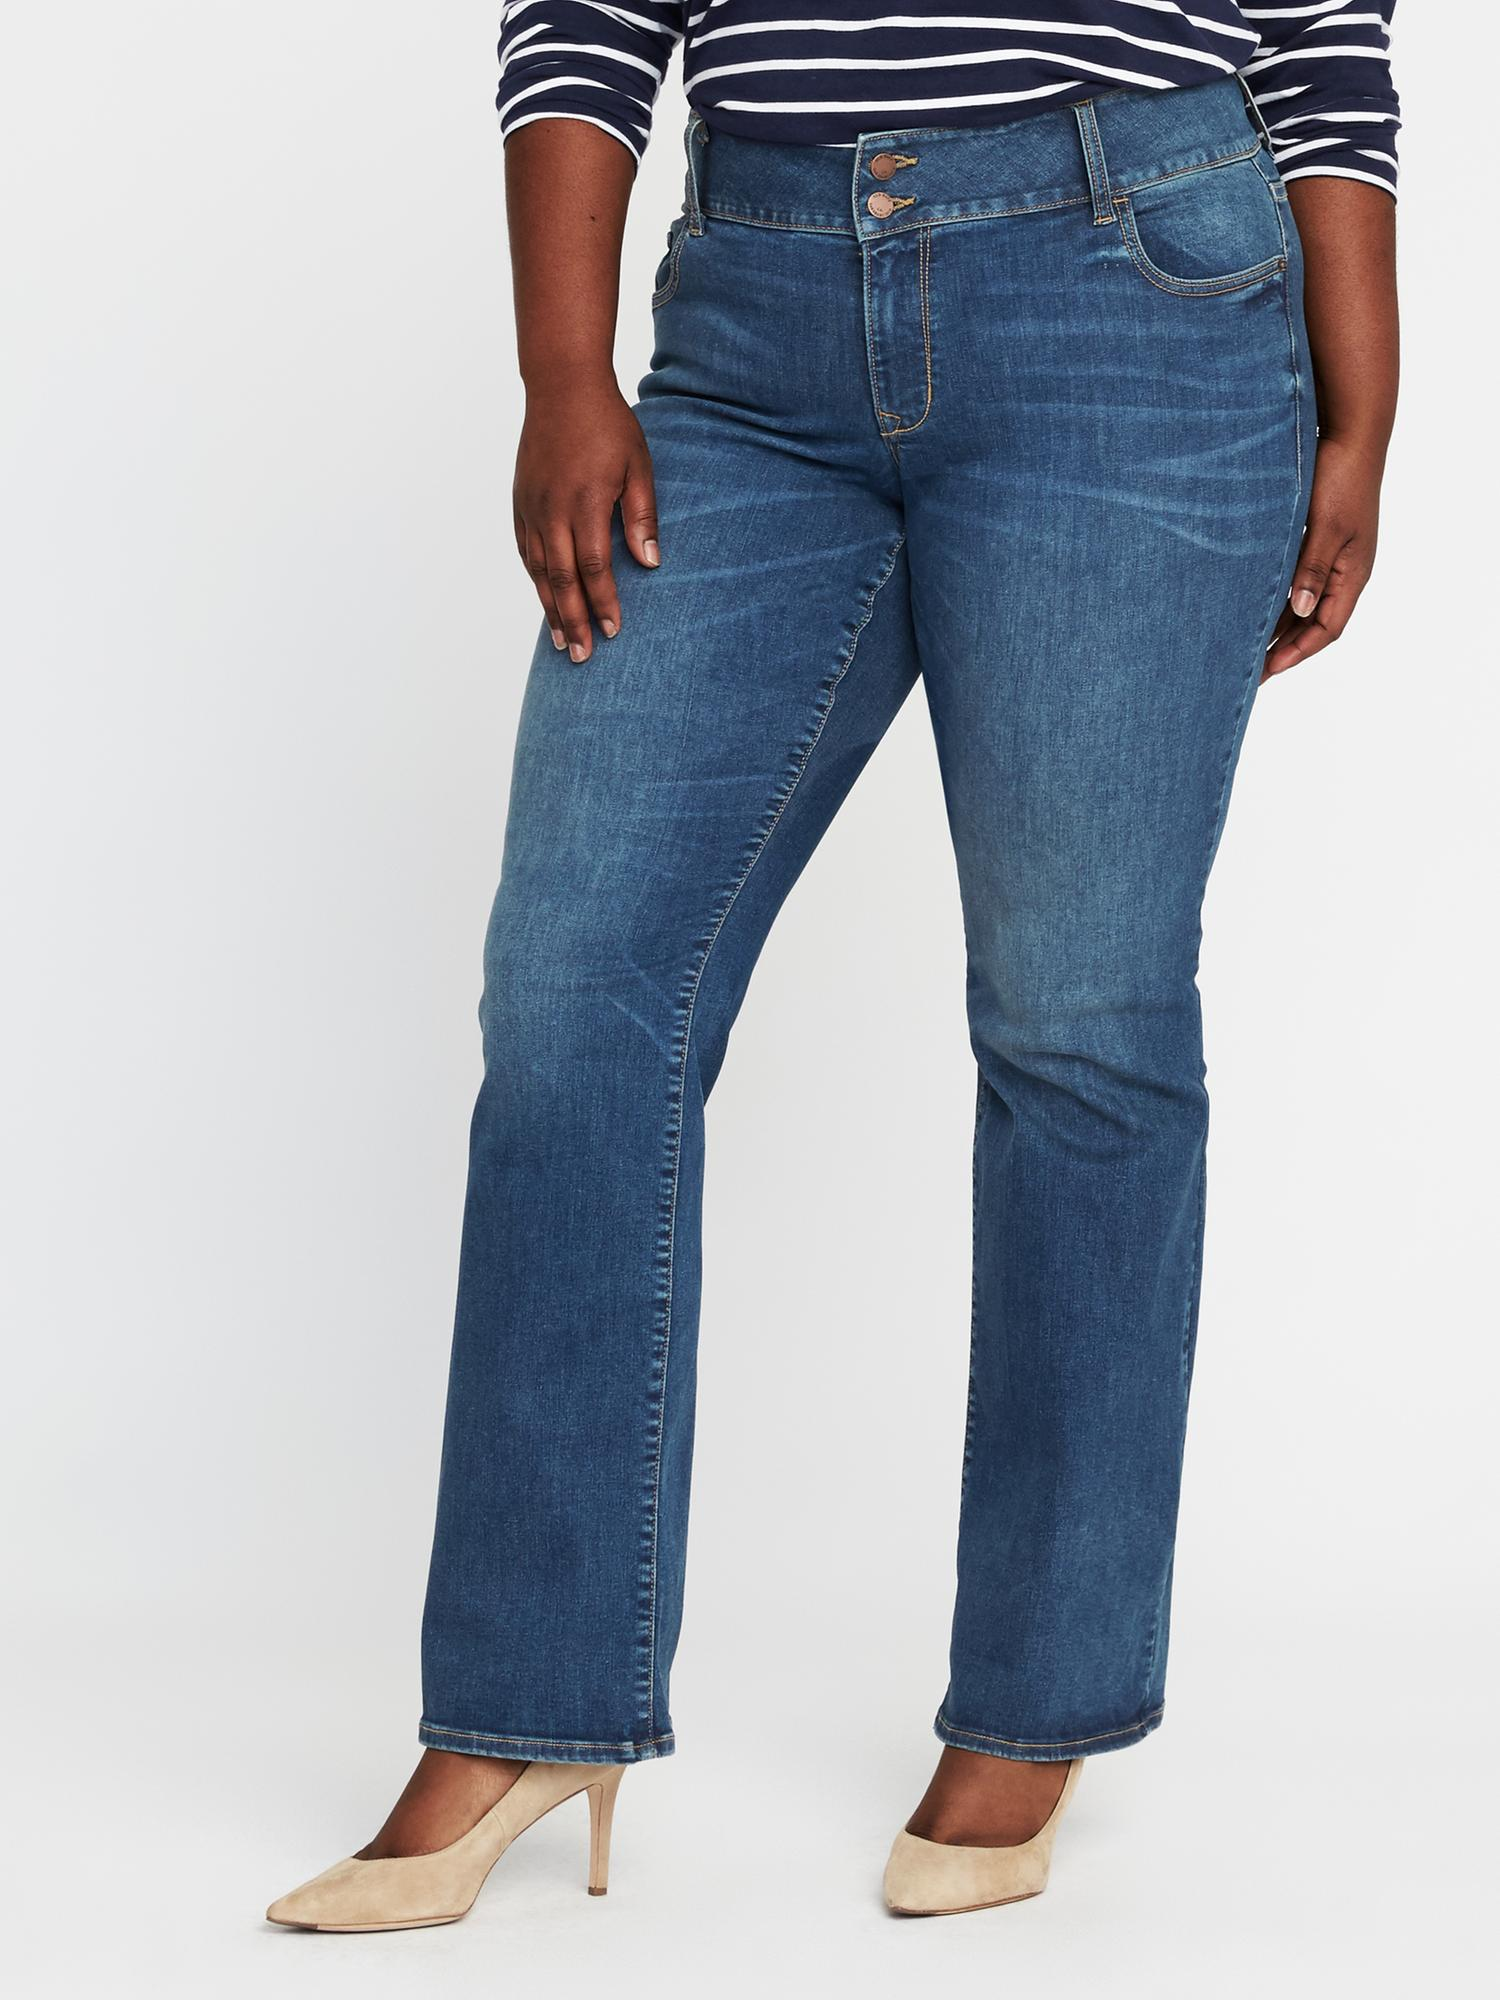 a72462ae6f6 High-Rise Built-In-Sculpt Plus-Size Rockstar Boot-Cut Jeans